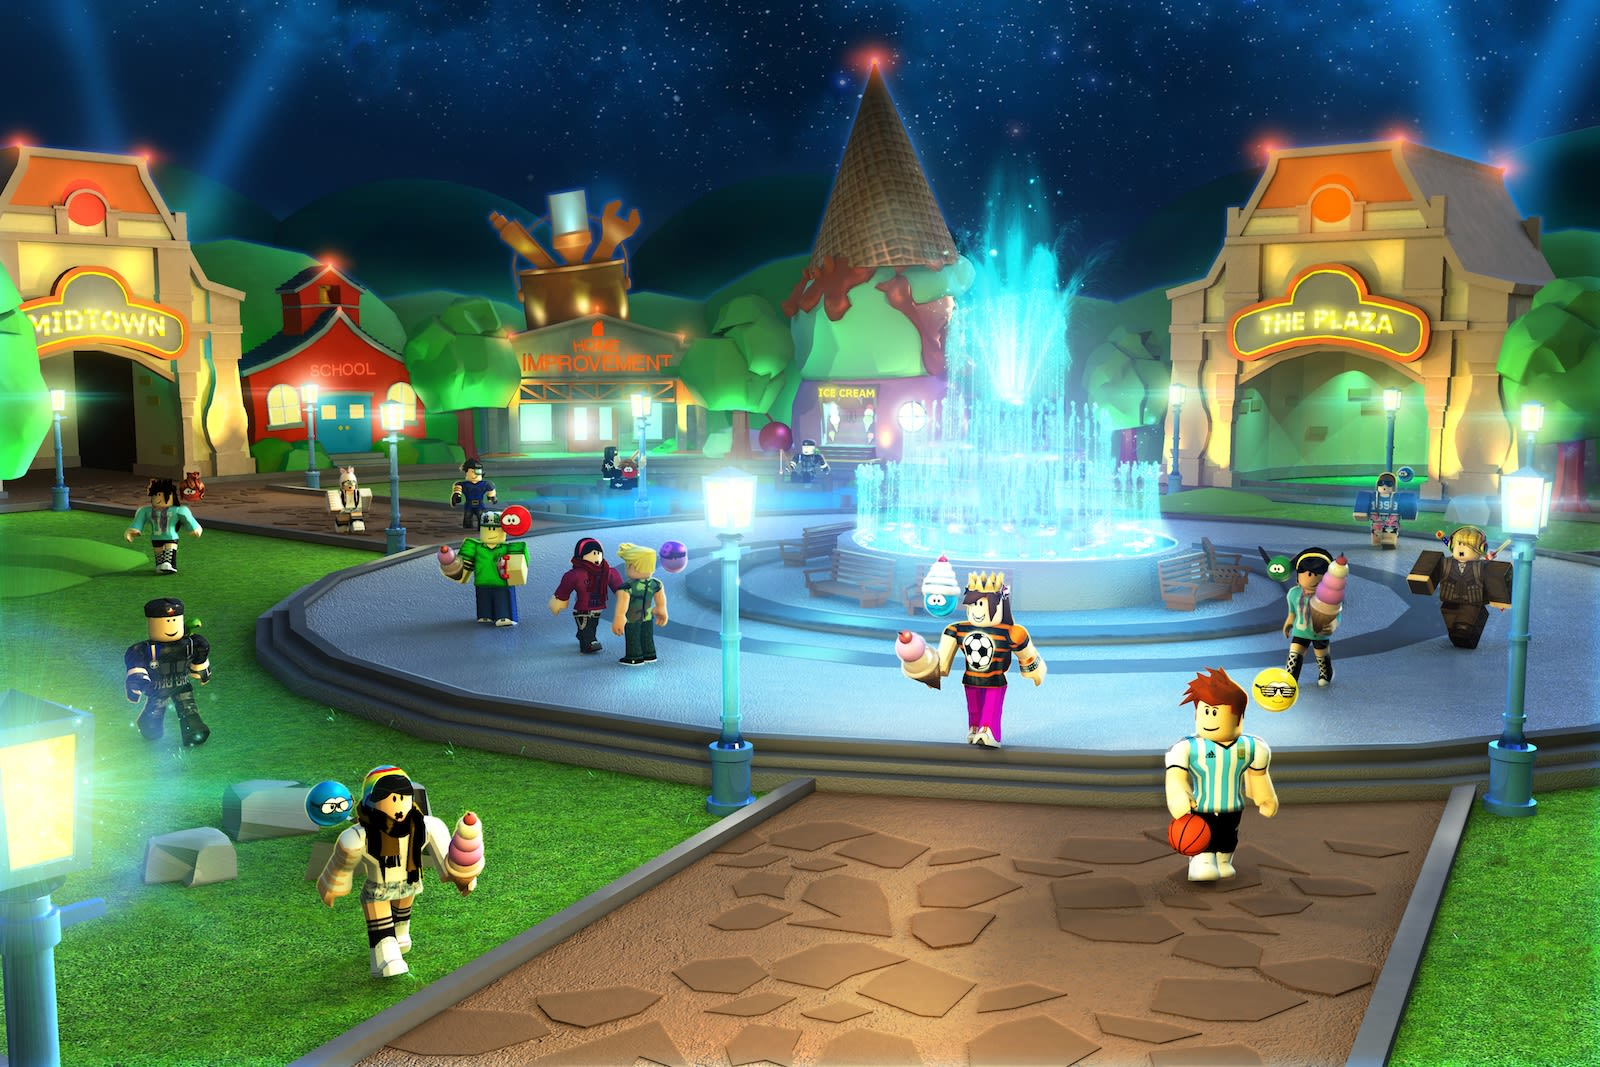 Hobbyist developers will make $30 million via 'Roblox' this year